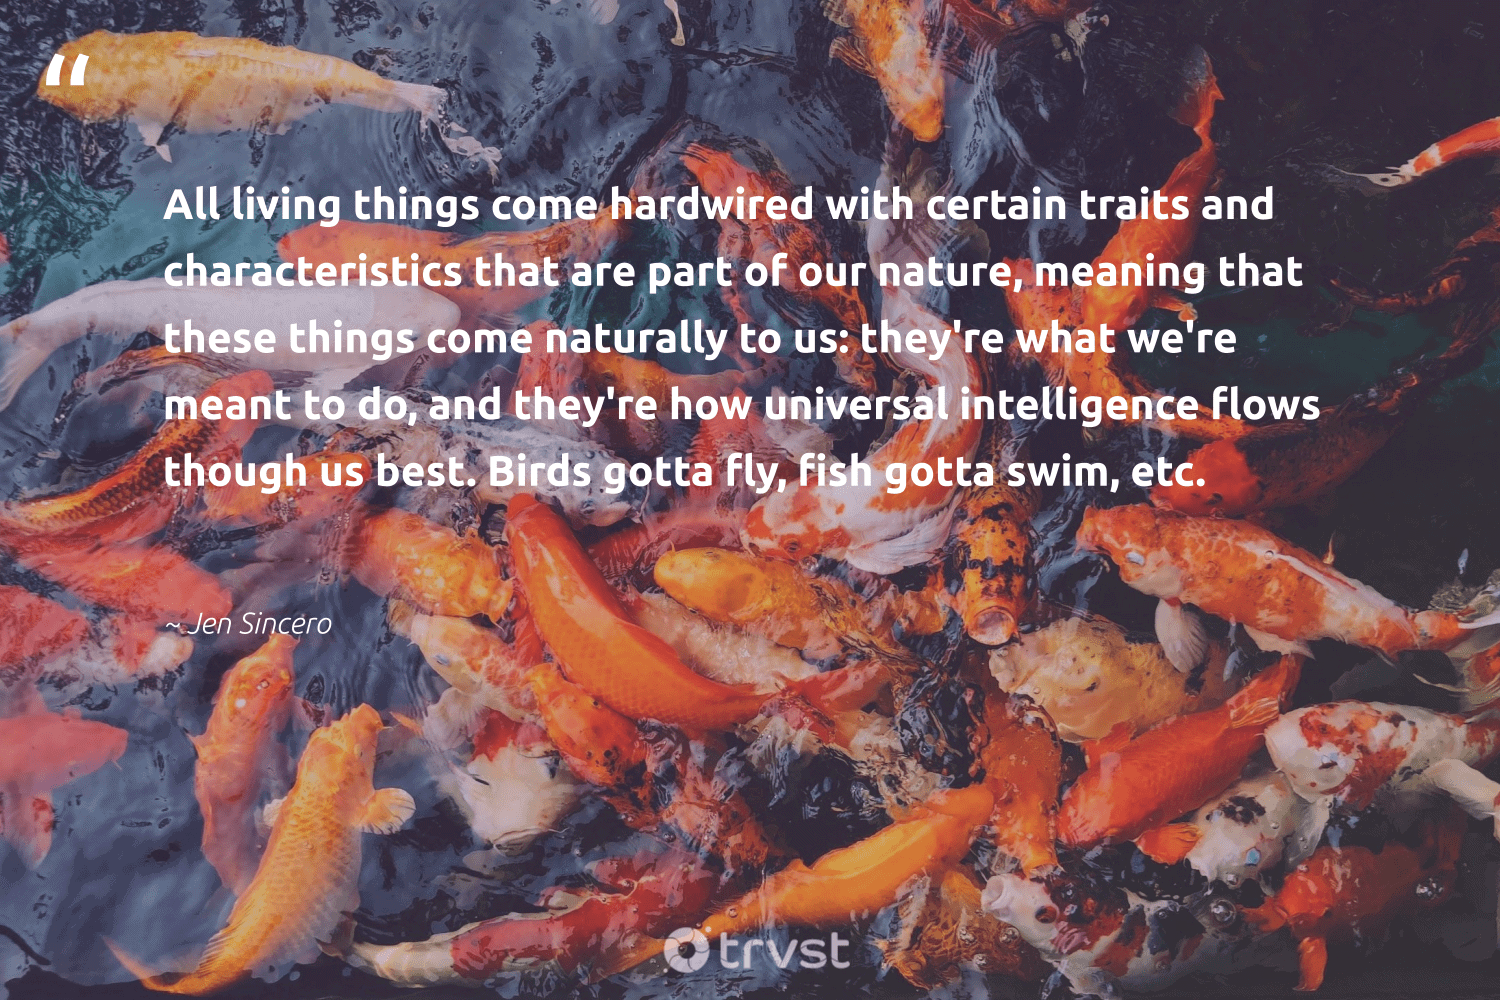 """""""All living things come hardwired with certain traits and characteristics that are part of our nature, meaning that these things come naturally to us: they're what we're meant to do, and they're how universal intelligence flows though us best. Birds gotta fly, fish gotta swim, etc.""""  - Jen Sincero #trvst #quotes #nature #fish #birds #planet #protecttheoceans #wildlifeplanet #planetearthfirst #environment #marinelife #earth"""